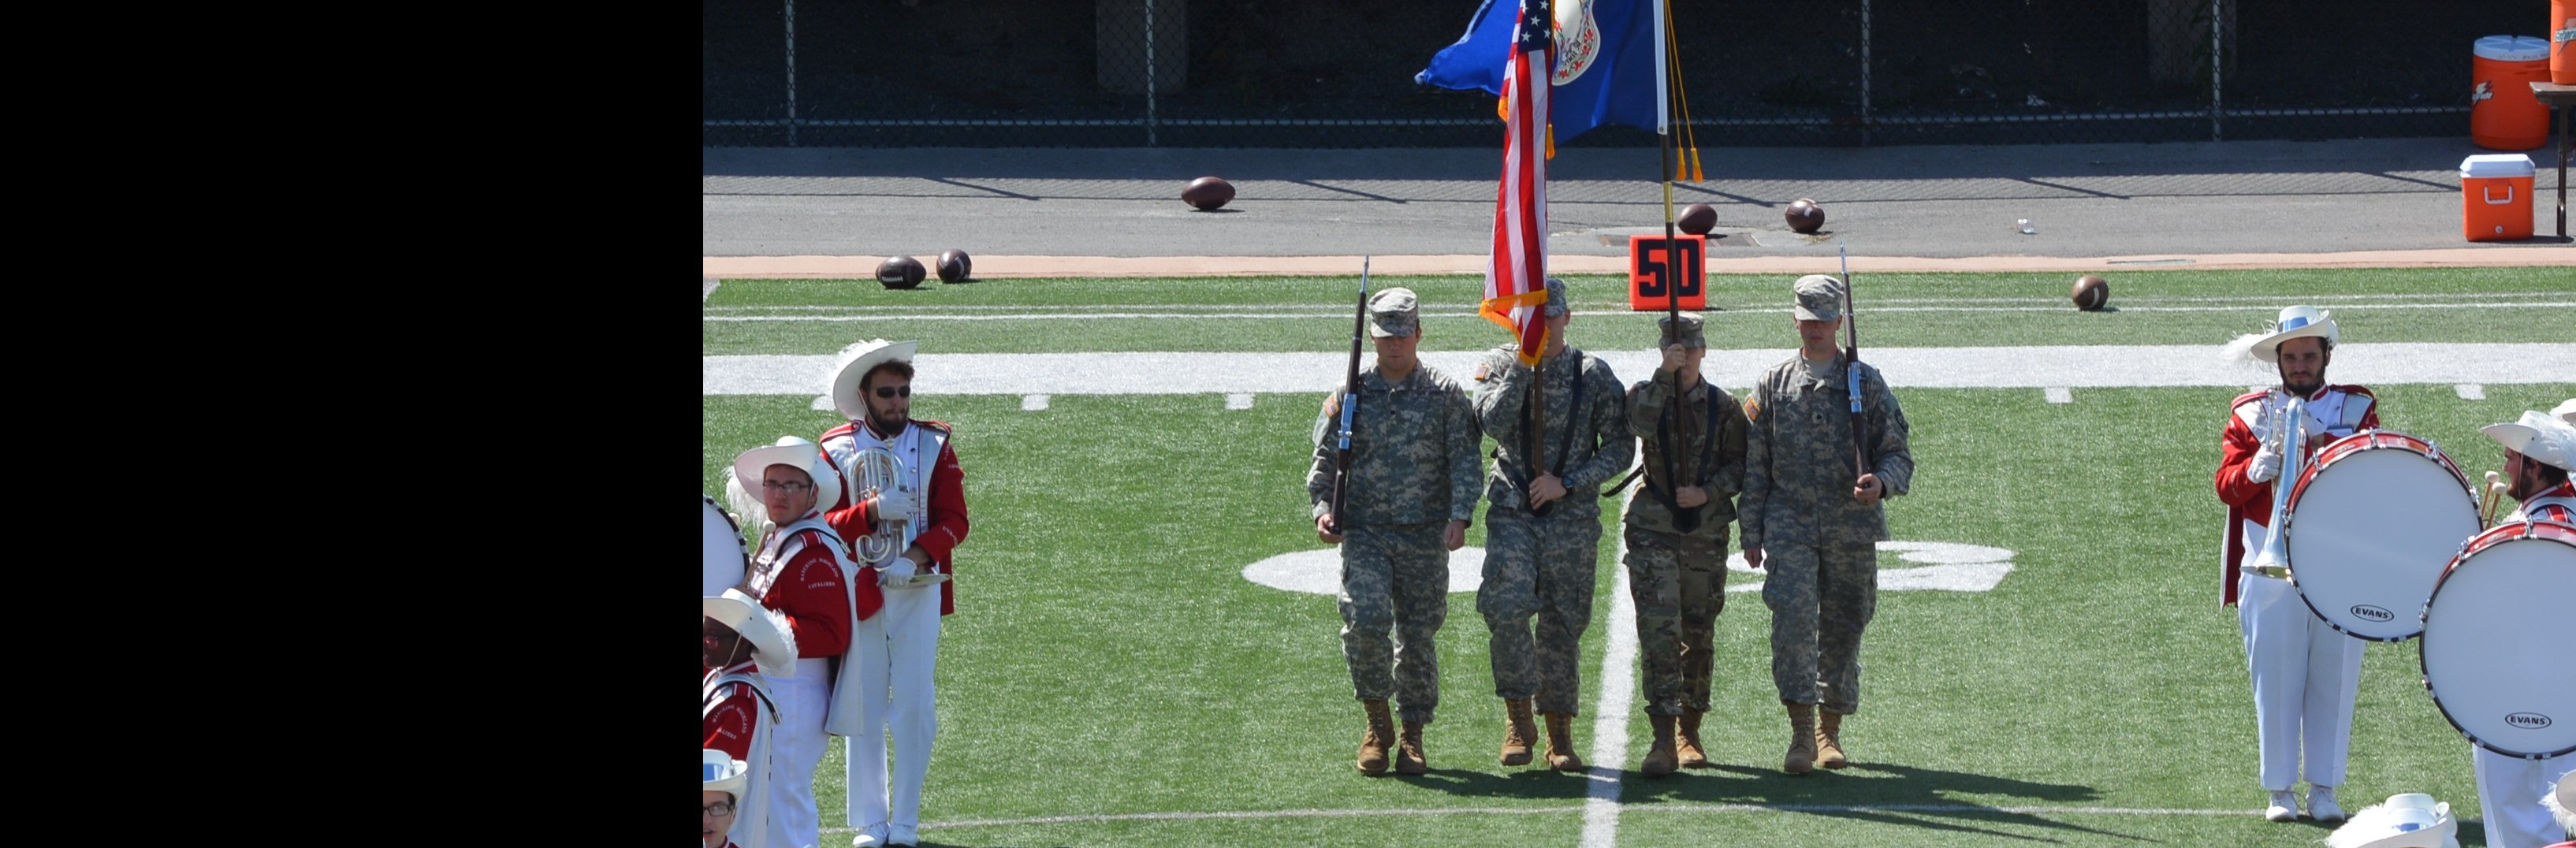 Cadets Buaserman, Mullins, Carico, and Day carry out the US and Virginia state colors to the field at the introduction of the UVA-Wise Football game.